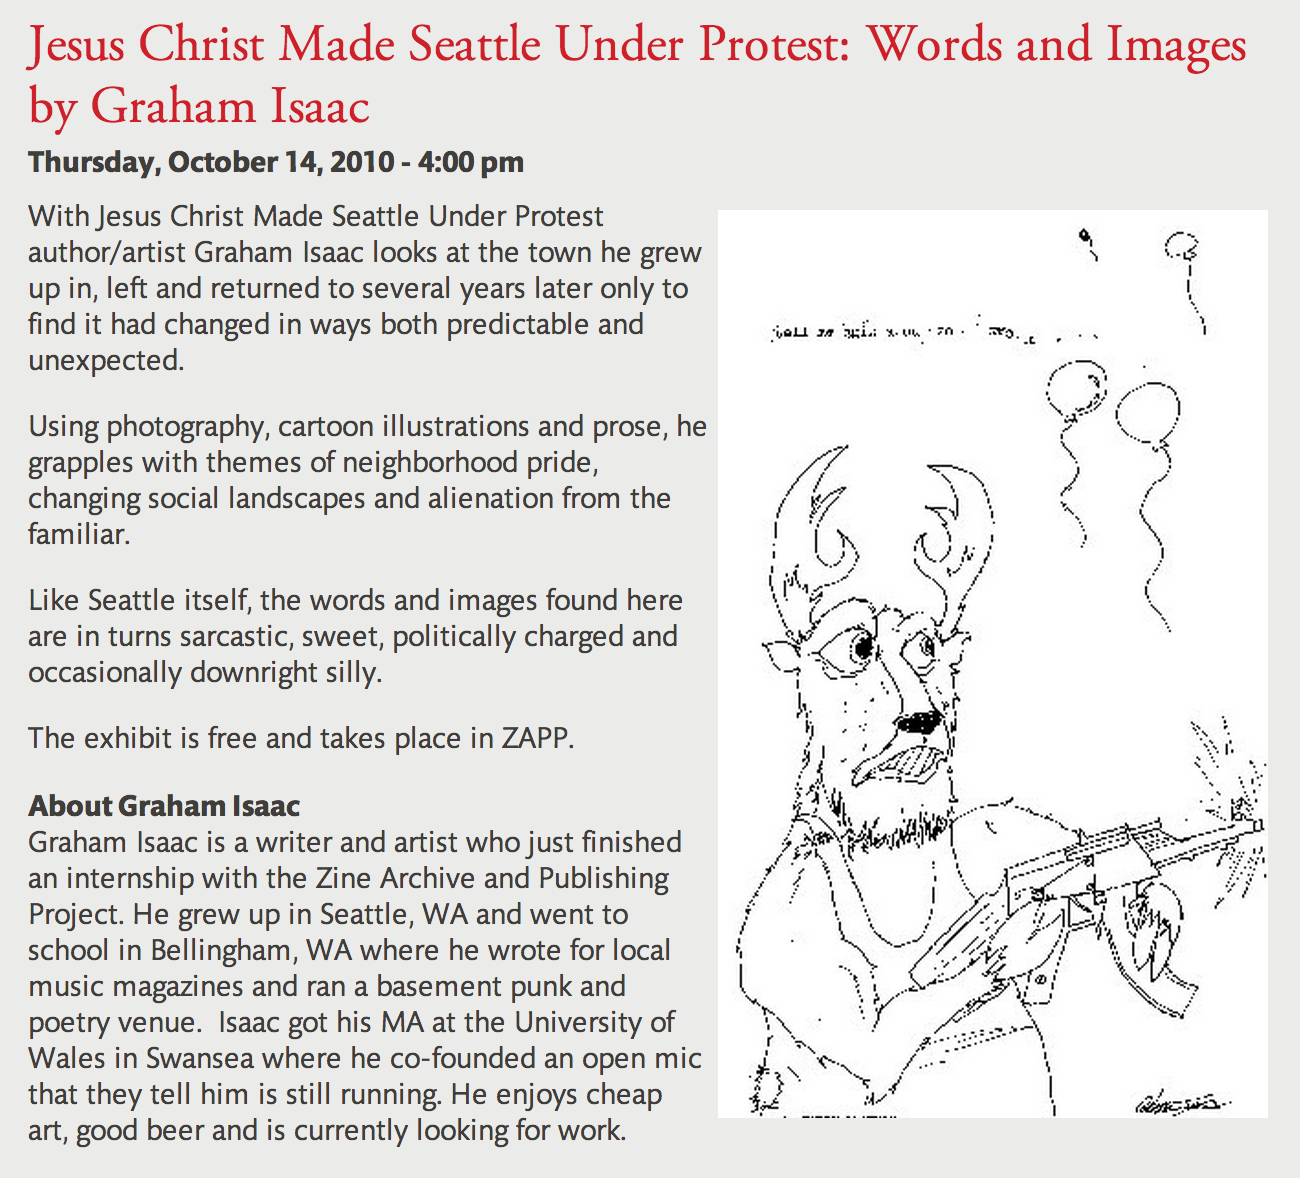 jesus christ made seattle under protest words and images by